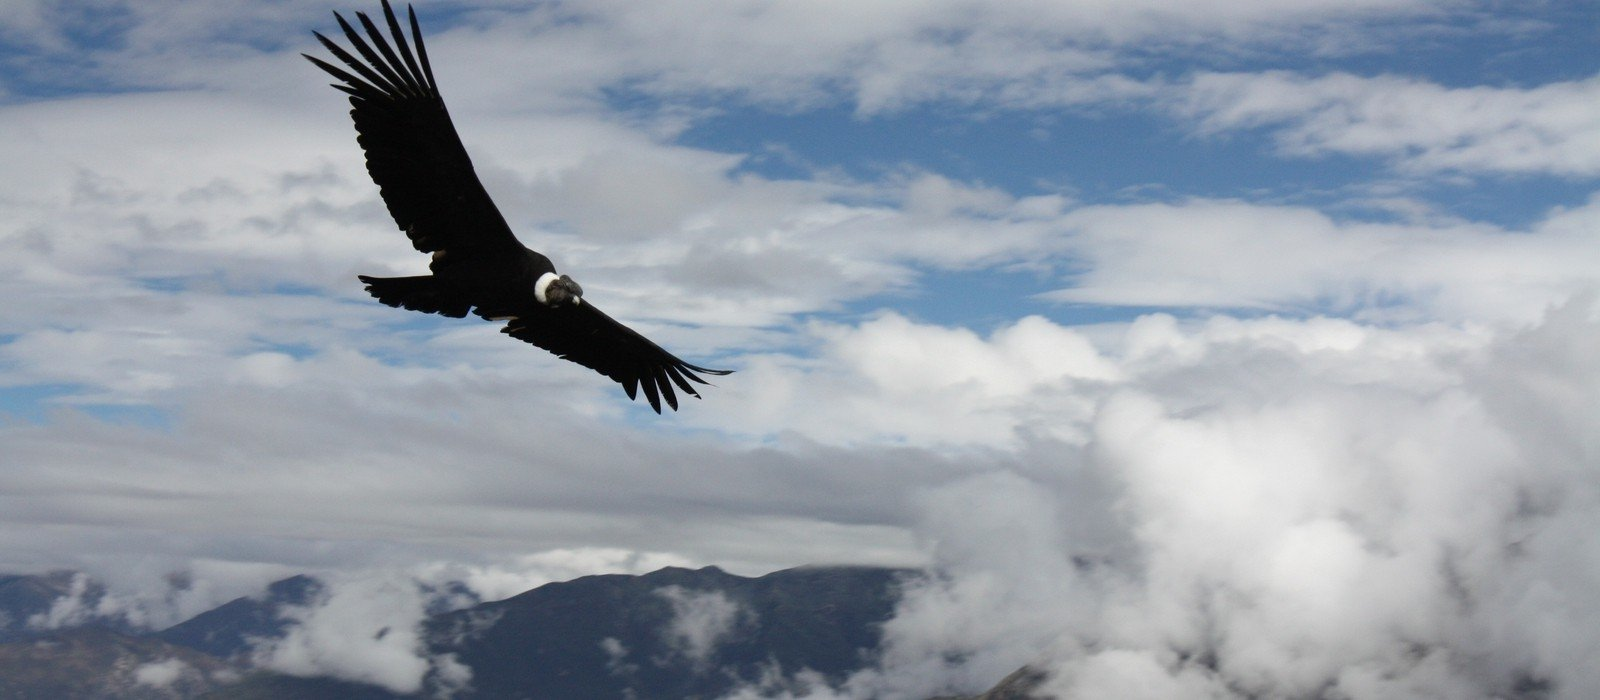 Views of Colca Canyon and Andean Condors